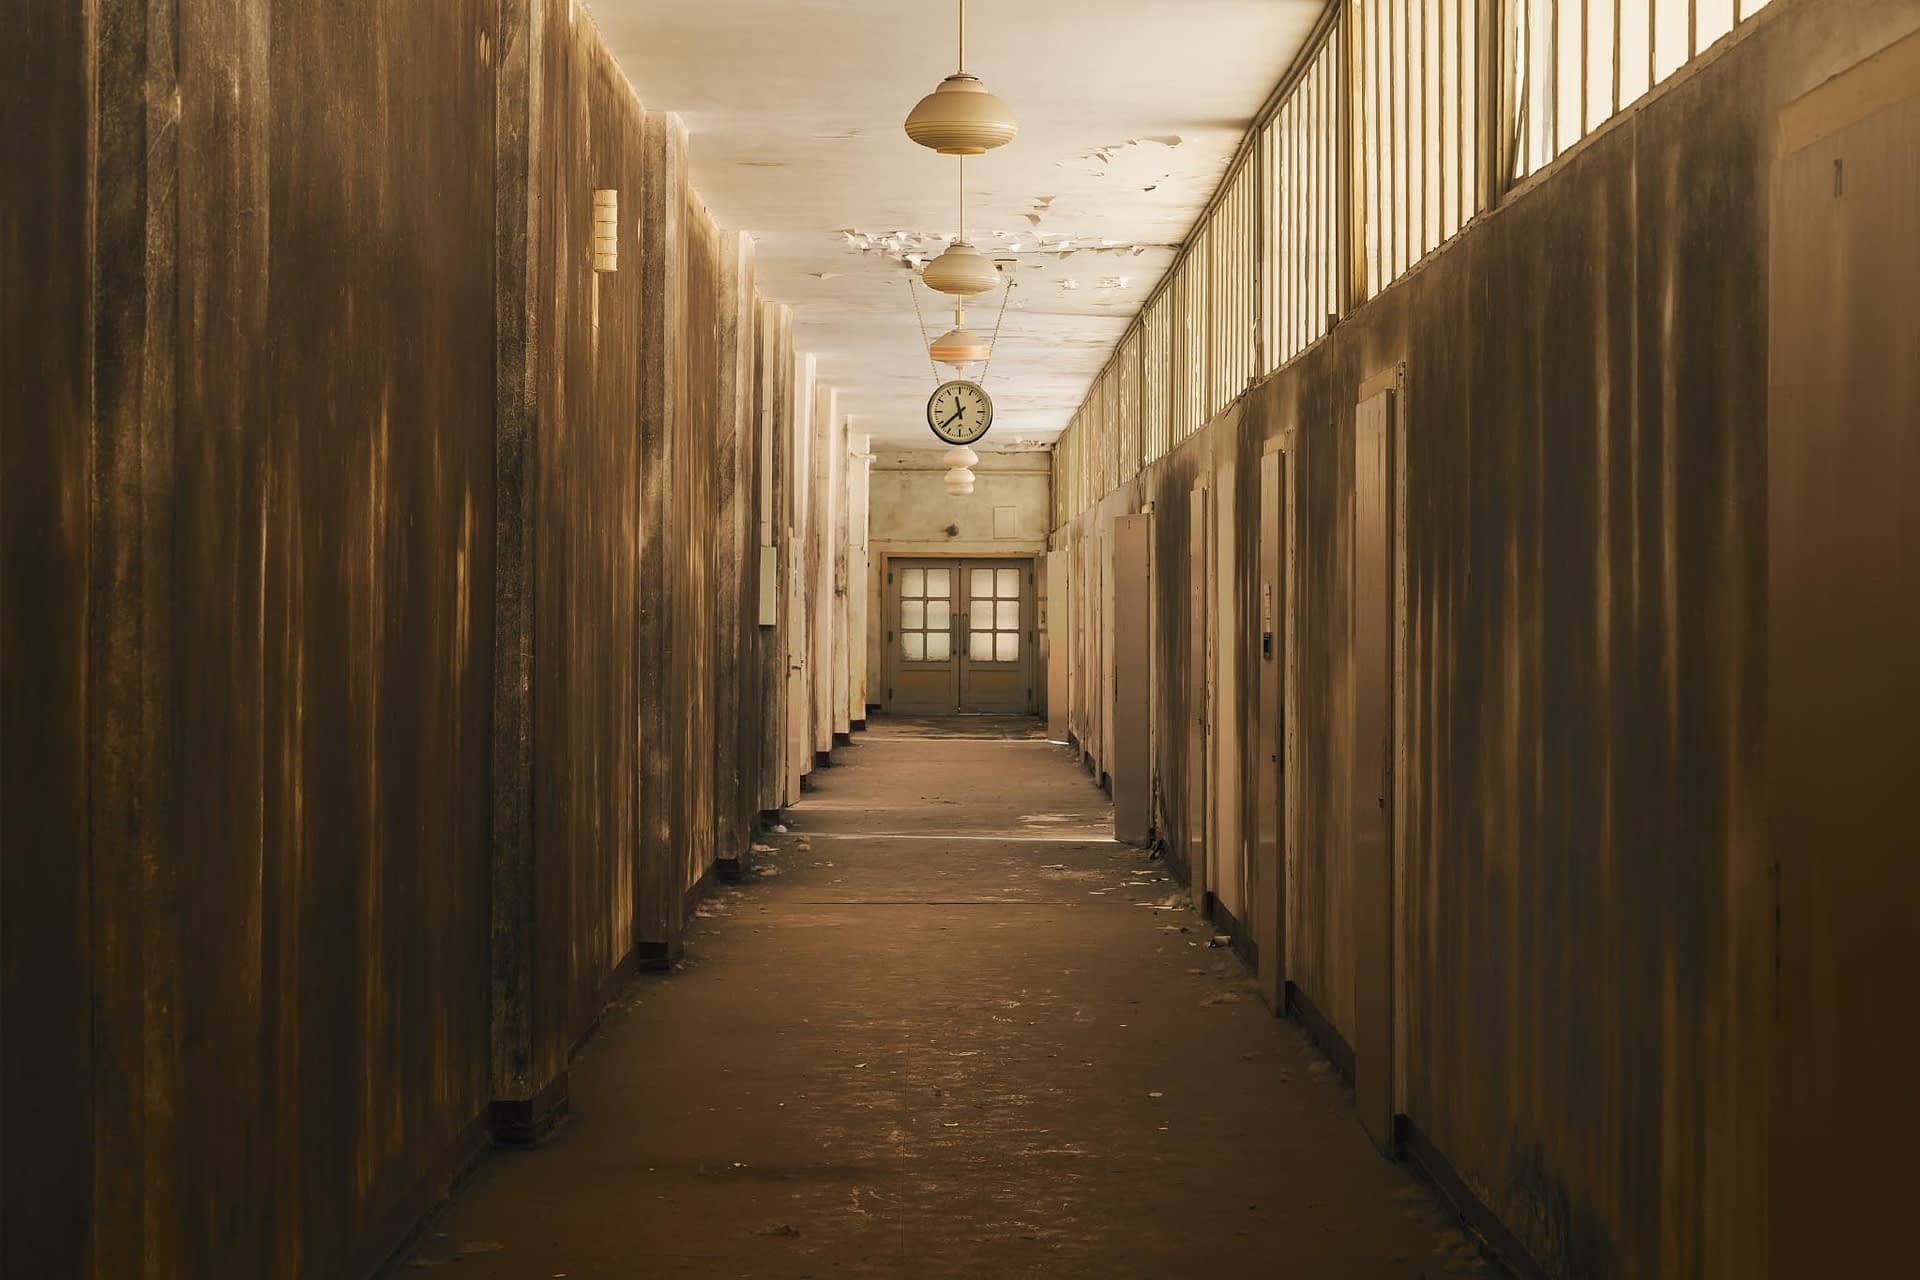 abandoned in Germany The corridor